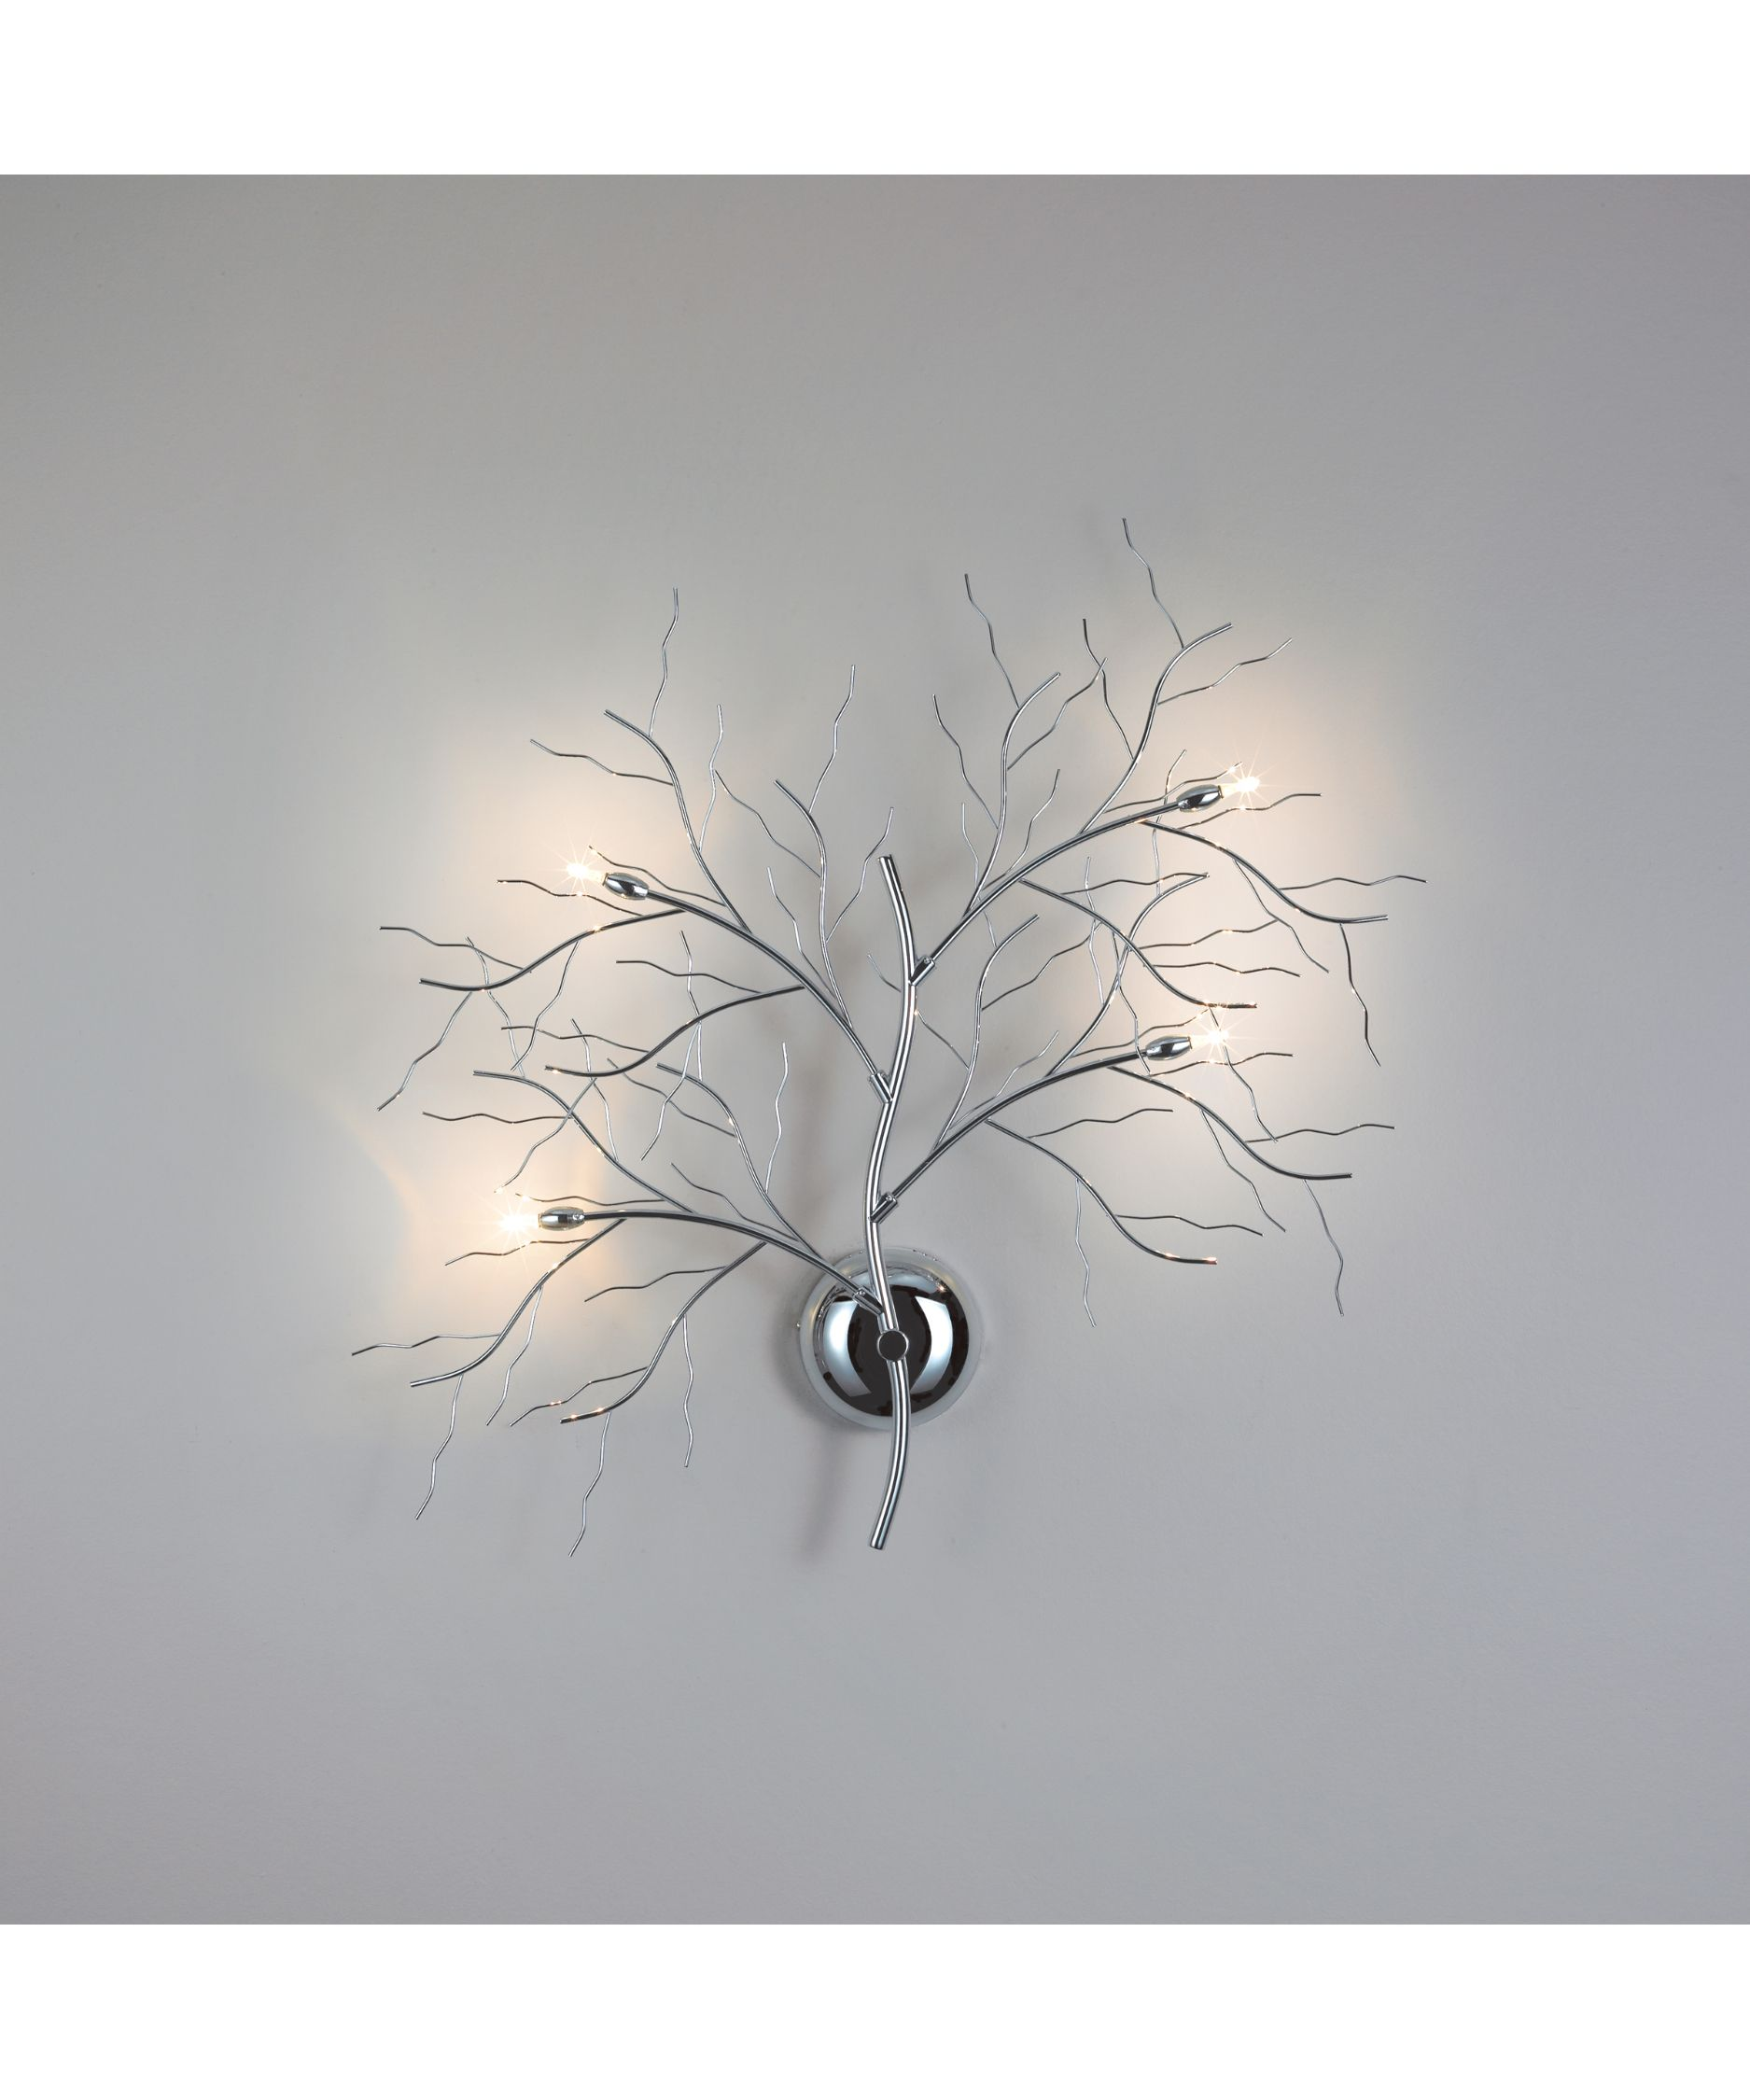 Autumn Wall Sconce by Eurofase lighting the image to learn